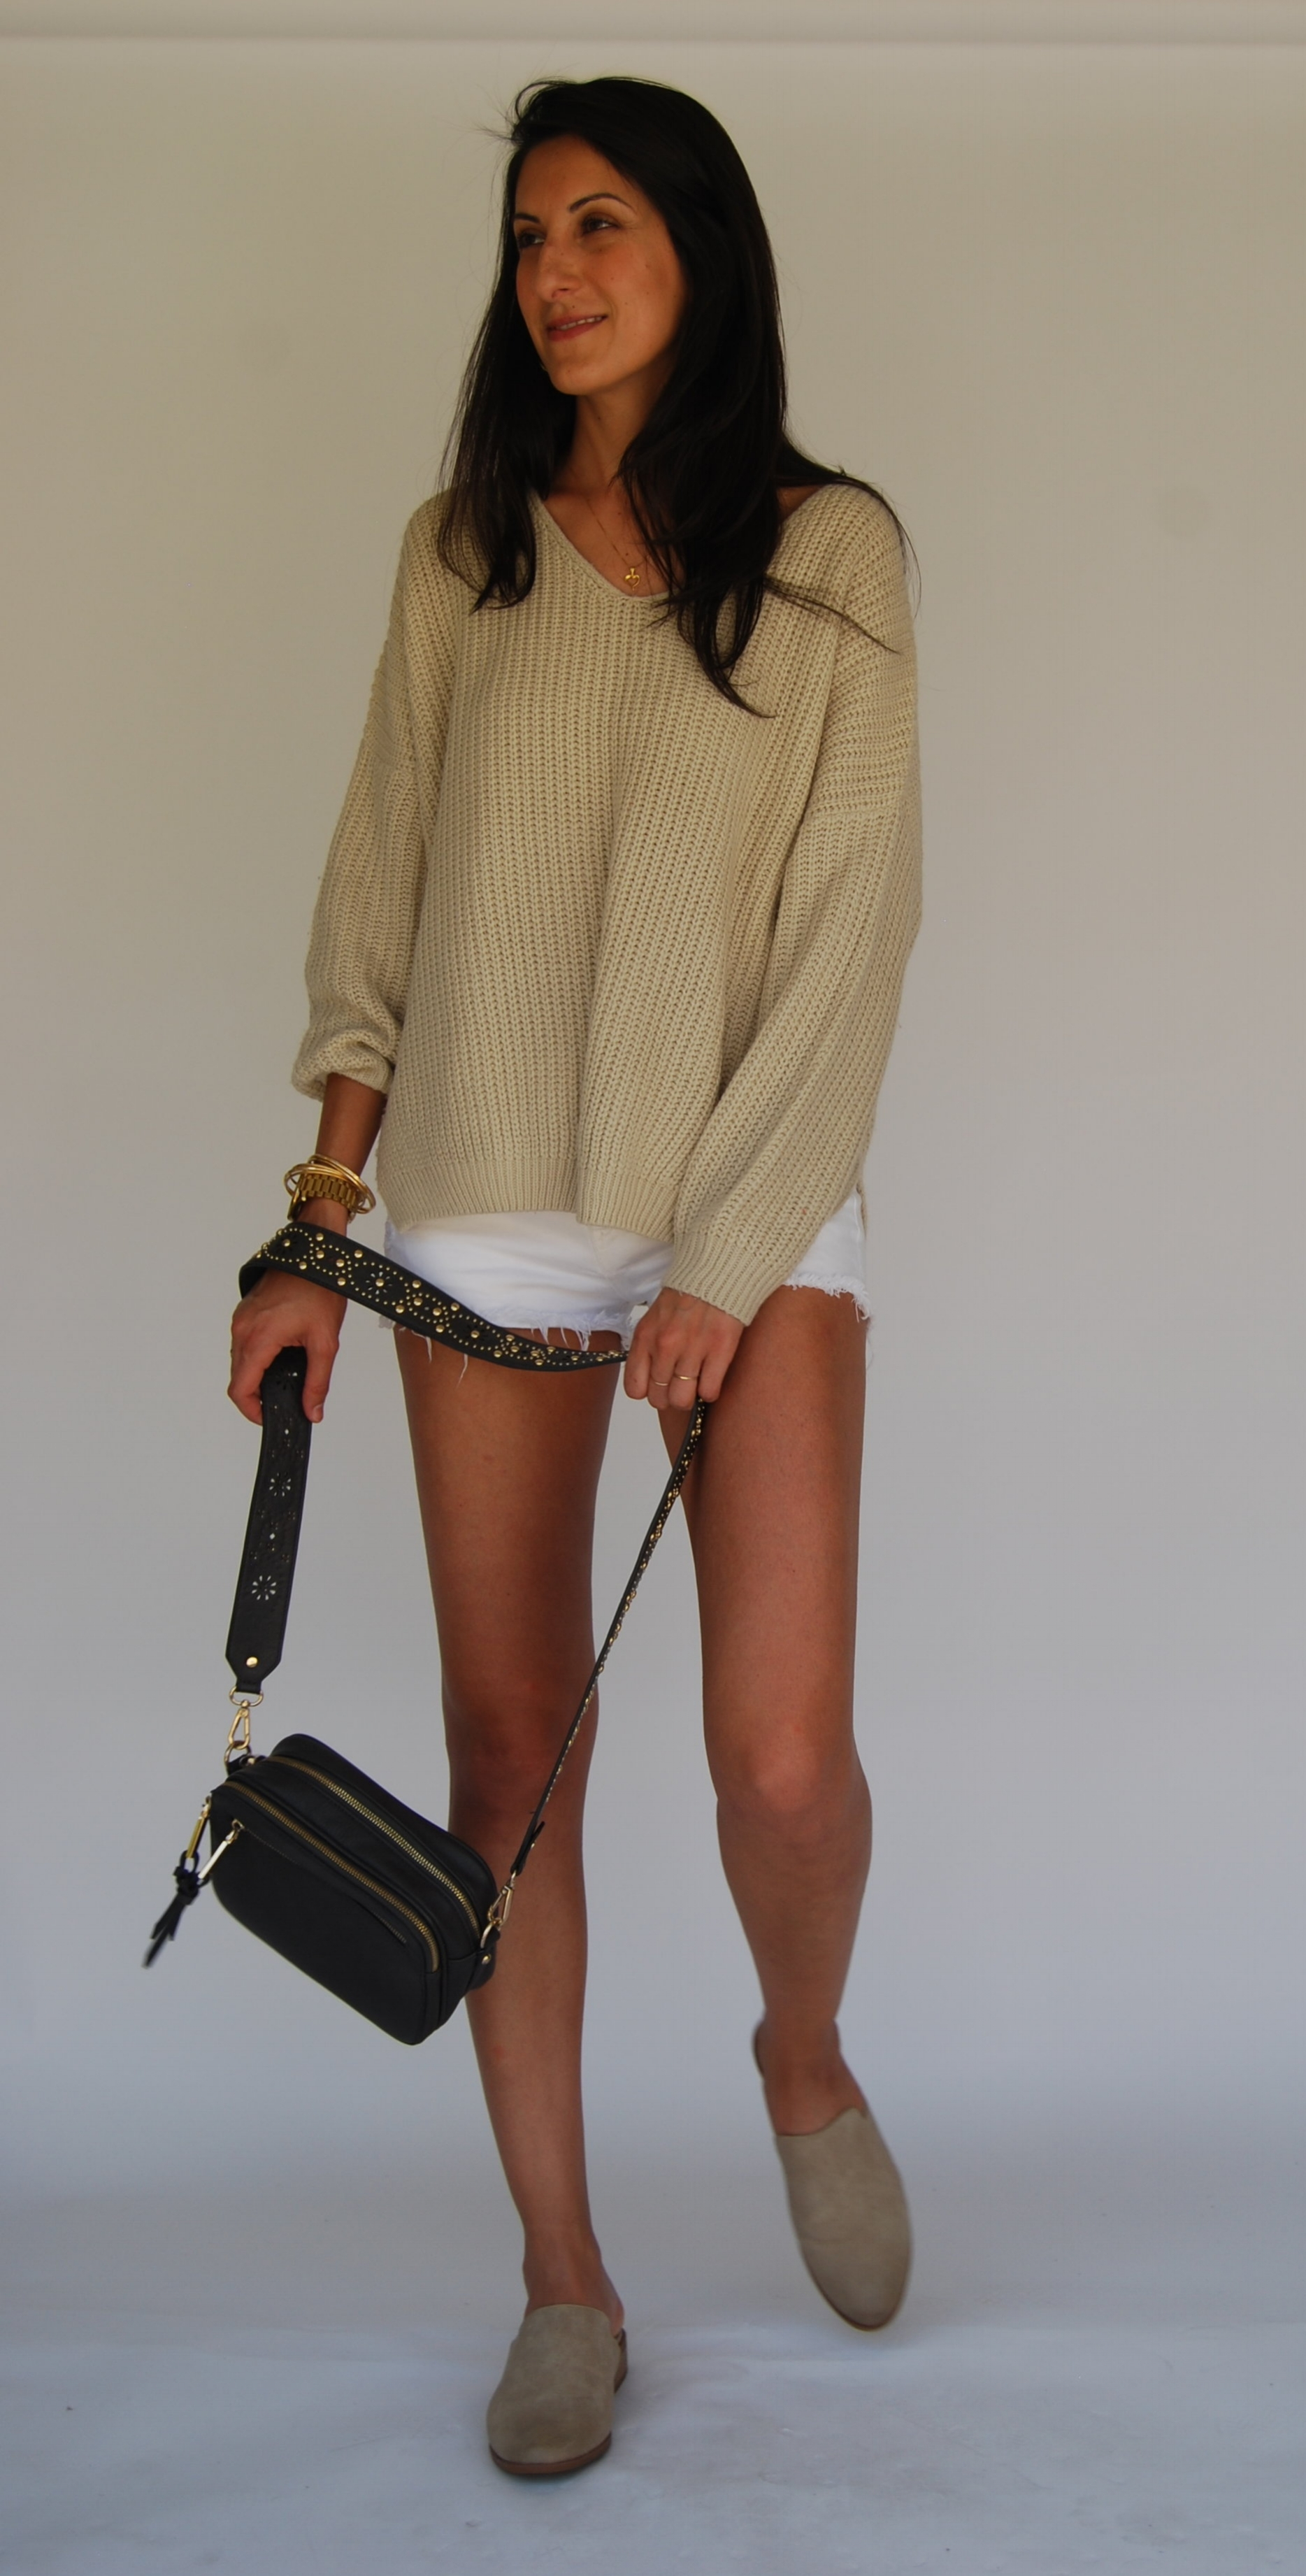 - 1. With shorts and sweater. Super muted colors. Nothing fancy, but still cute, put-together, and comfortable.